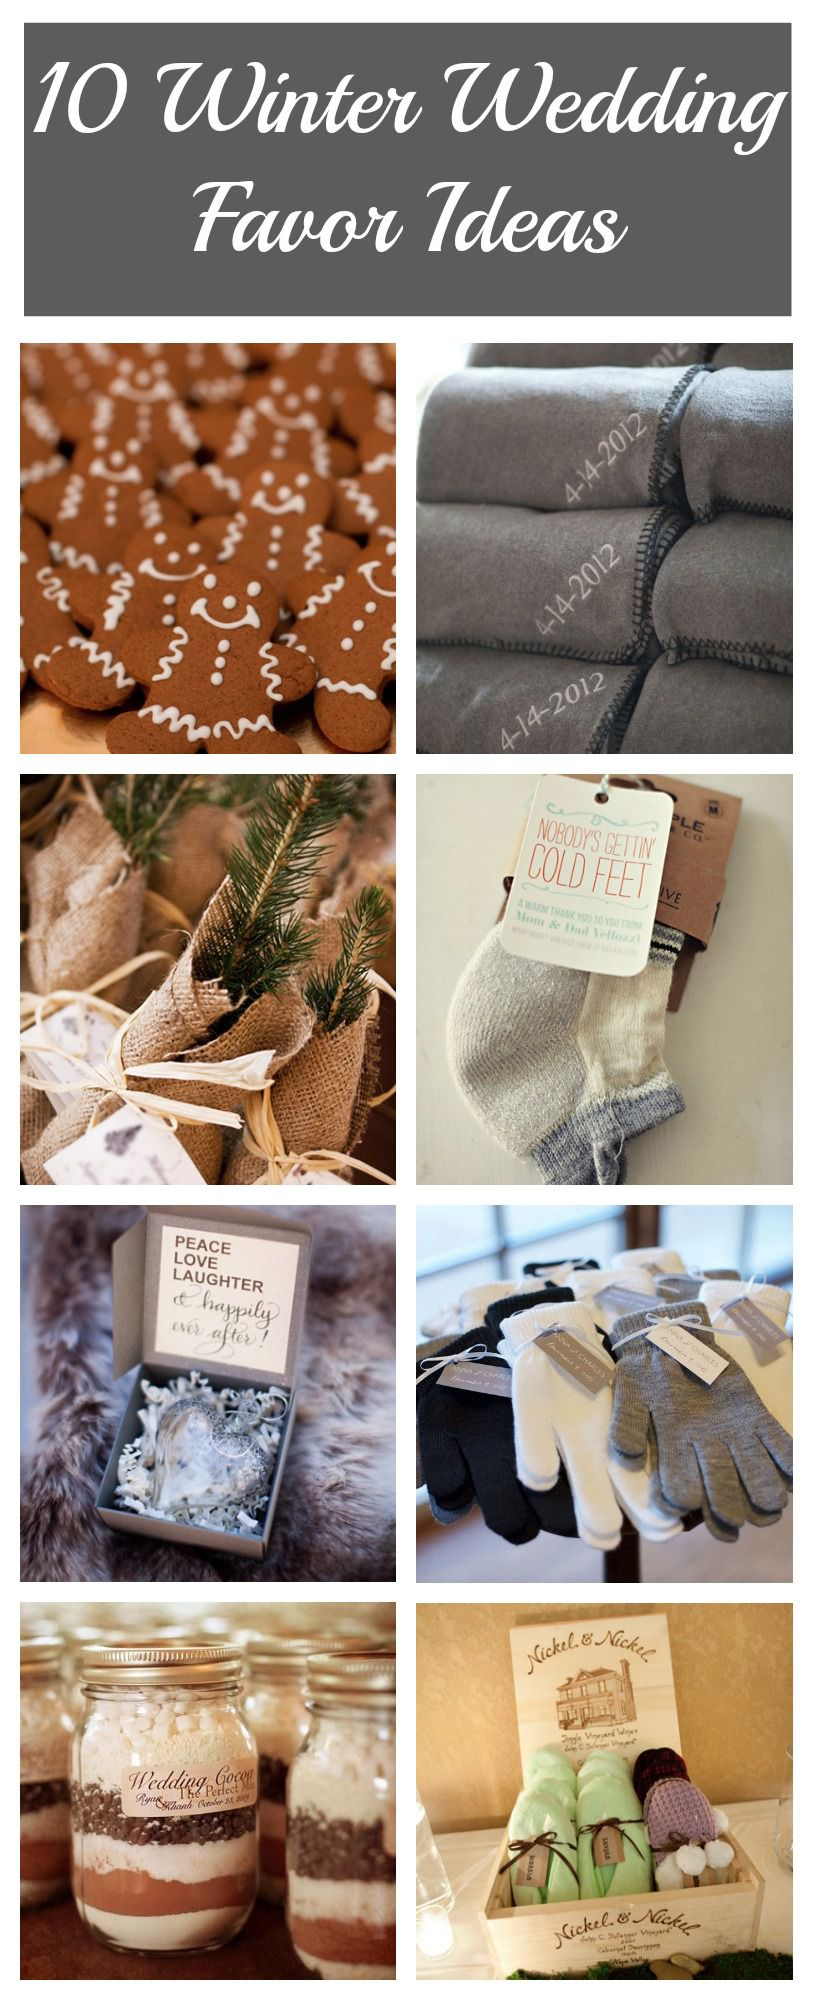 10 Winter Wedding Favor Ideas Rustic Wedding Chic